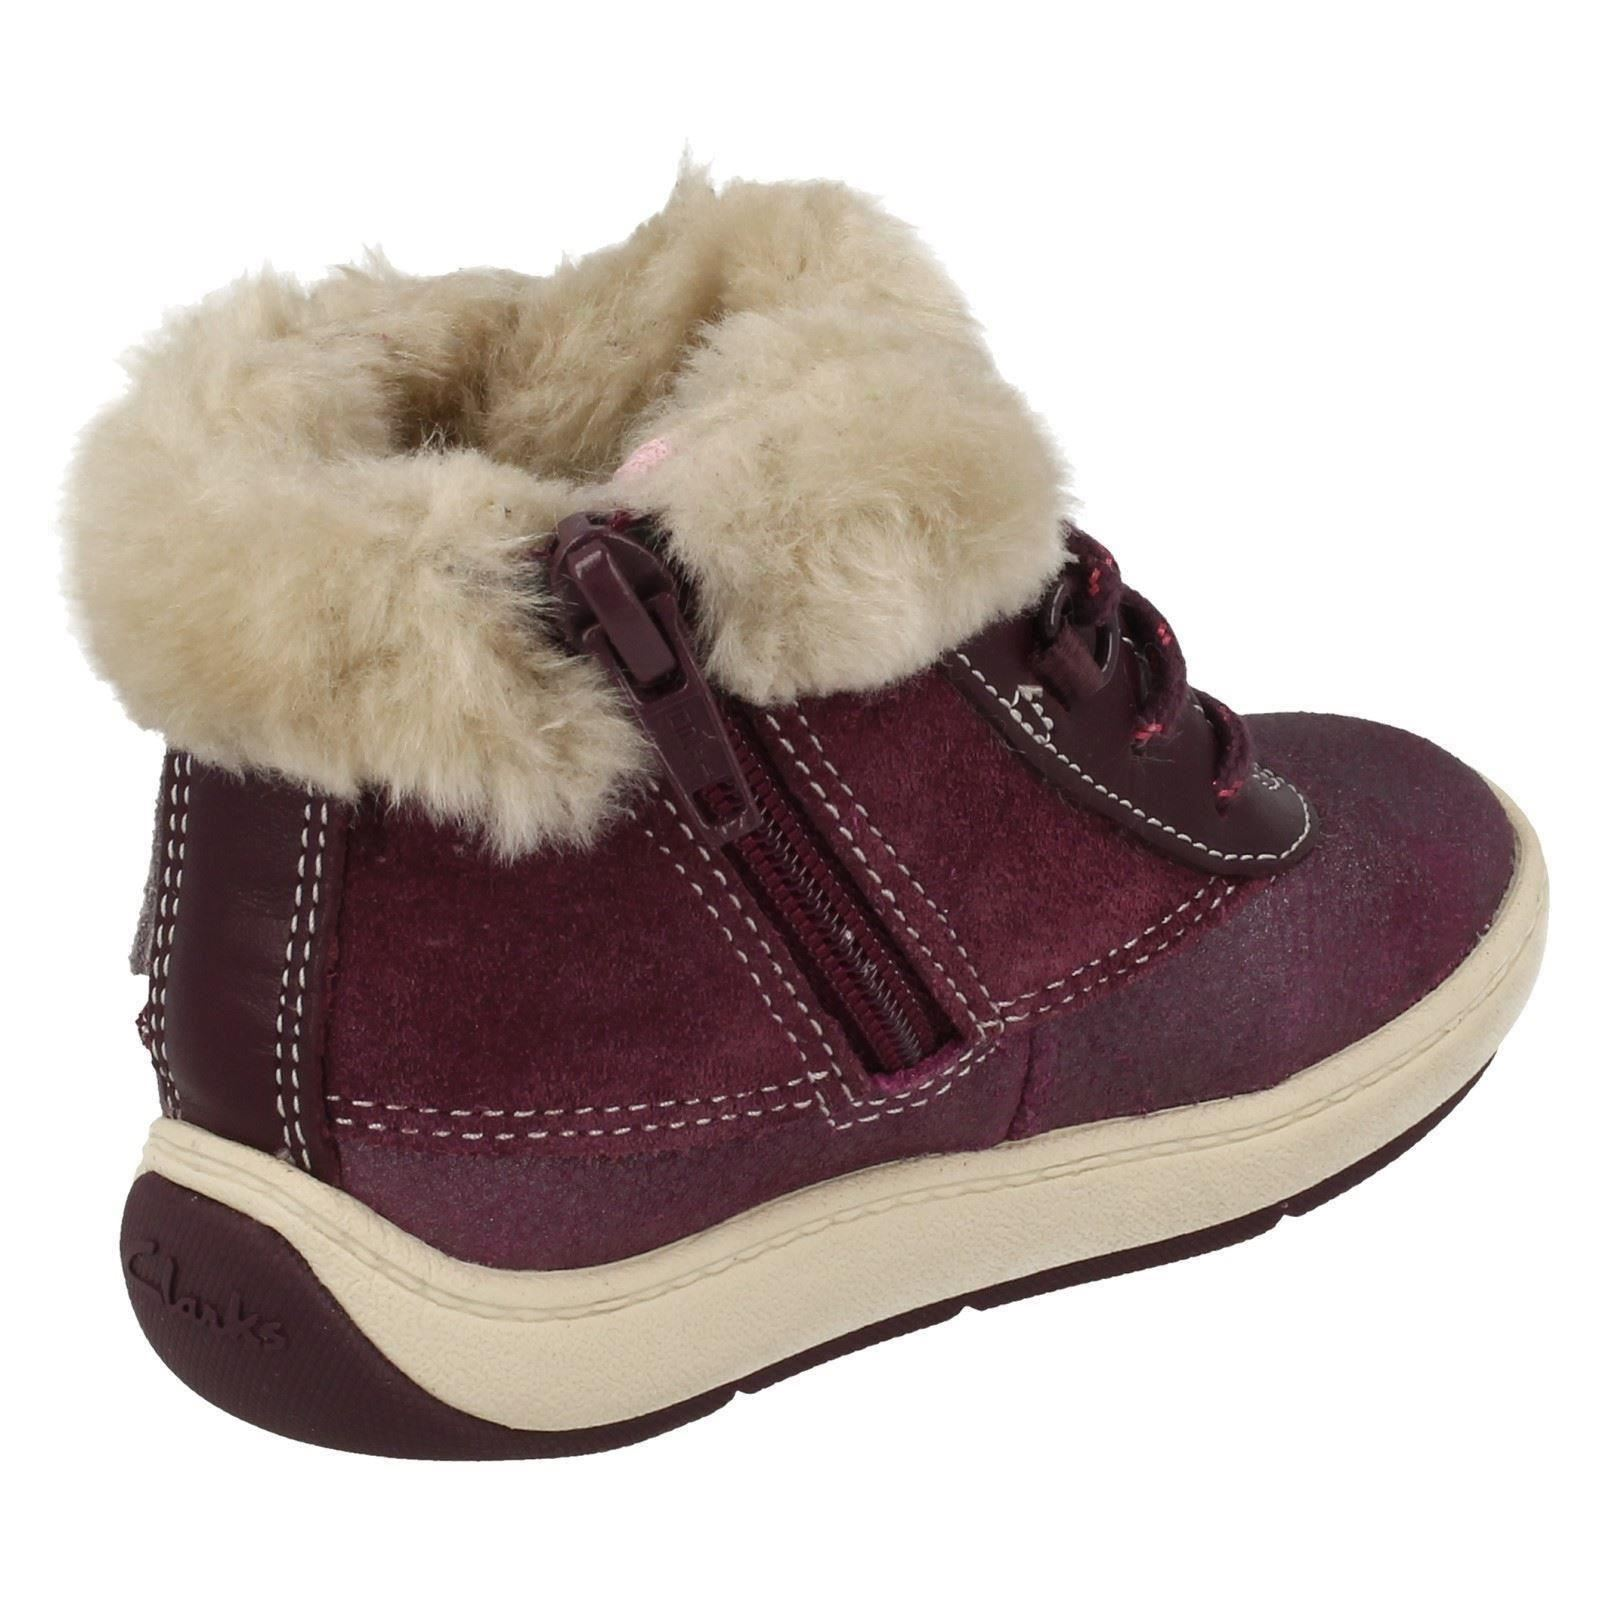 Clarks Girls Ankle Boots - Maxi Fun Fst